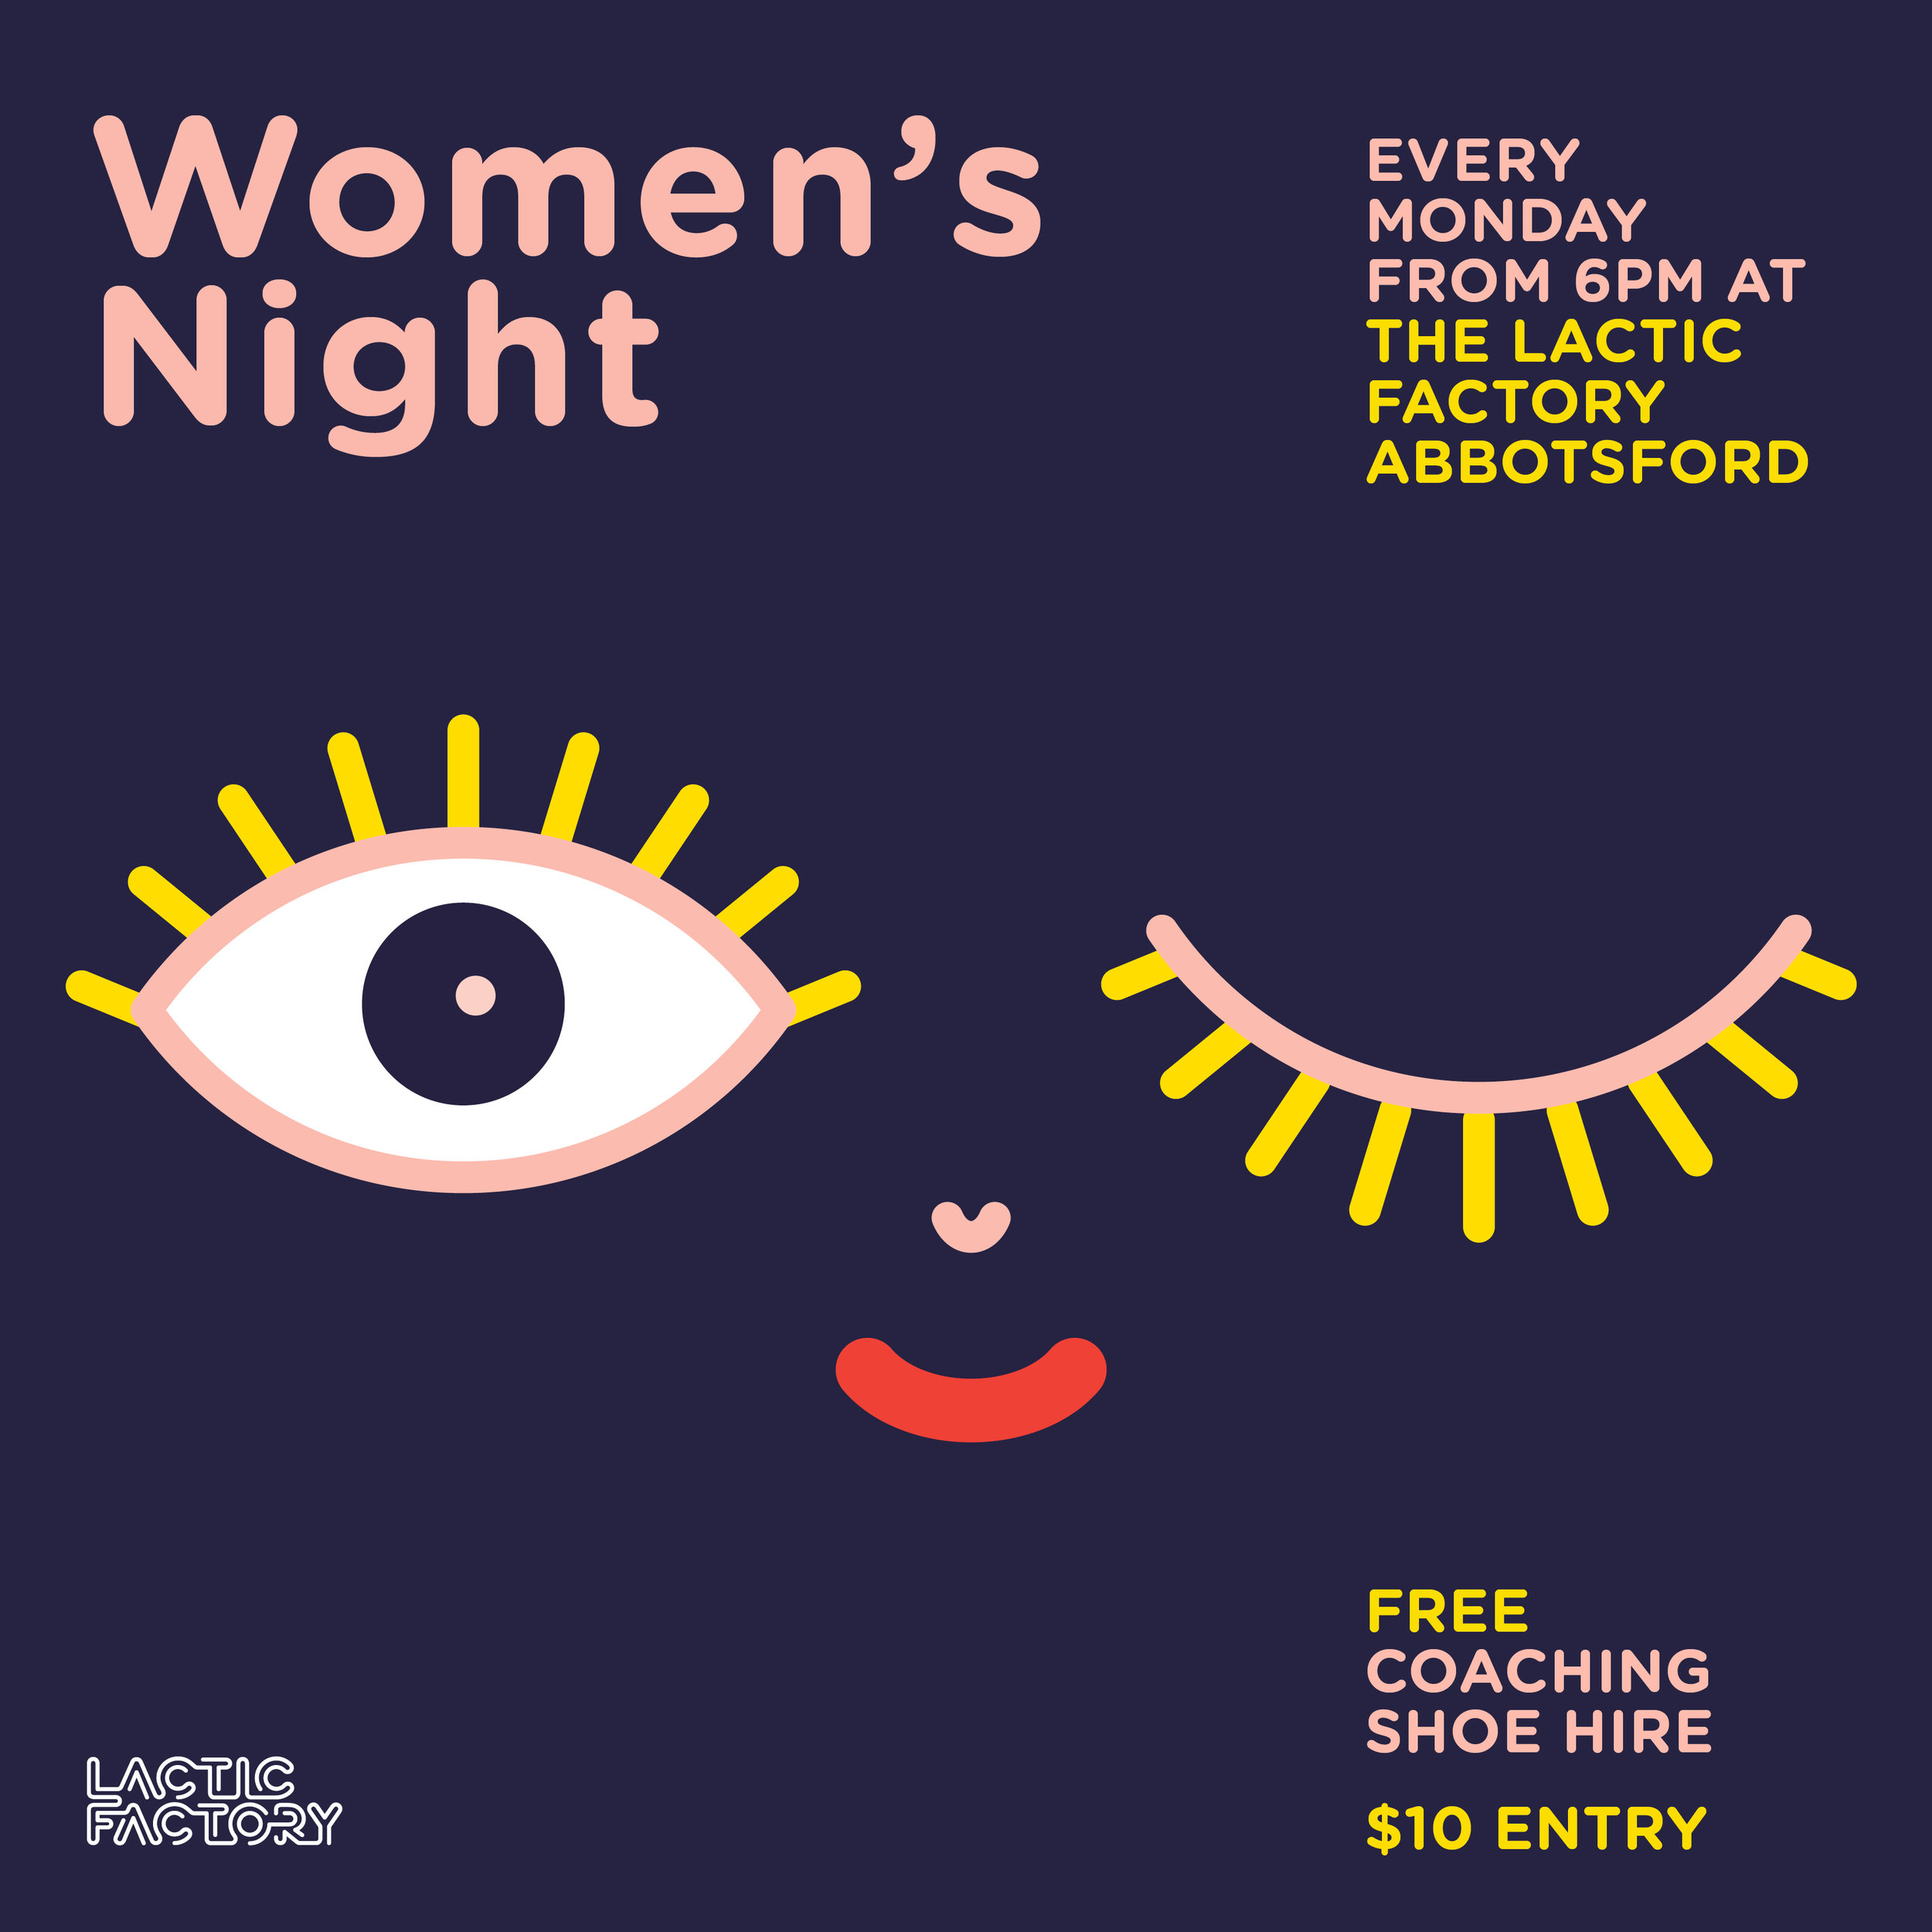 NS LF WomensNight2019.jpg